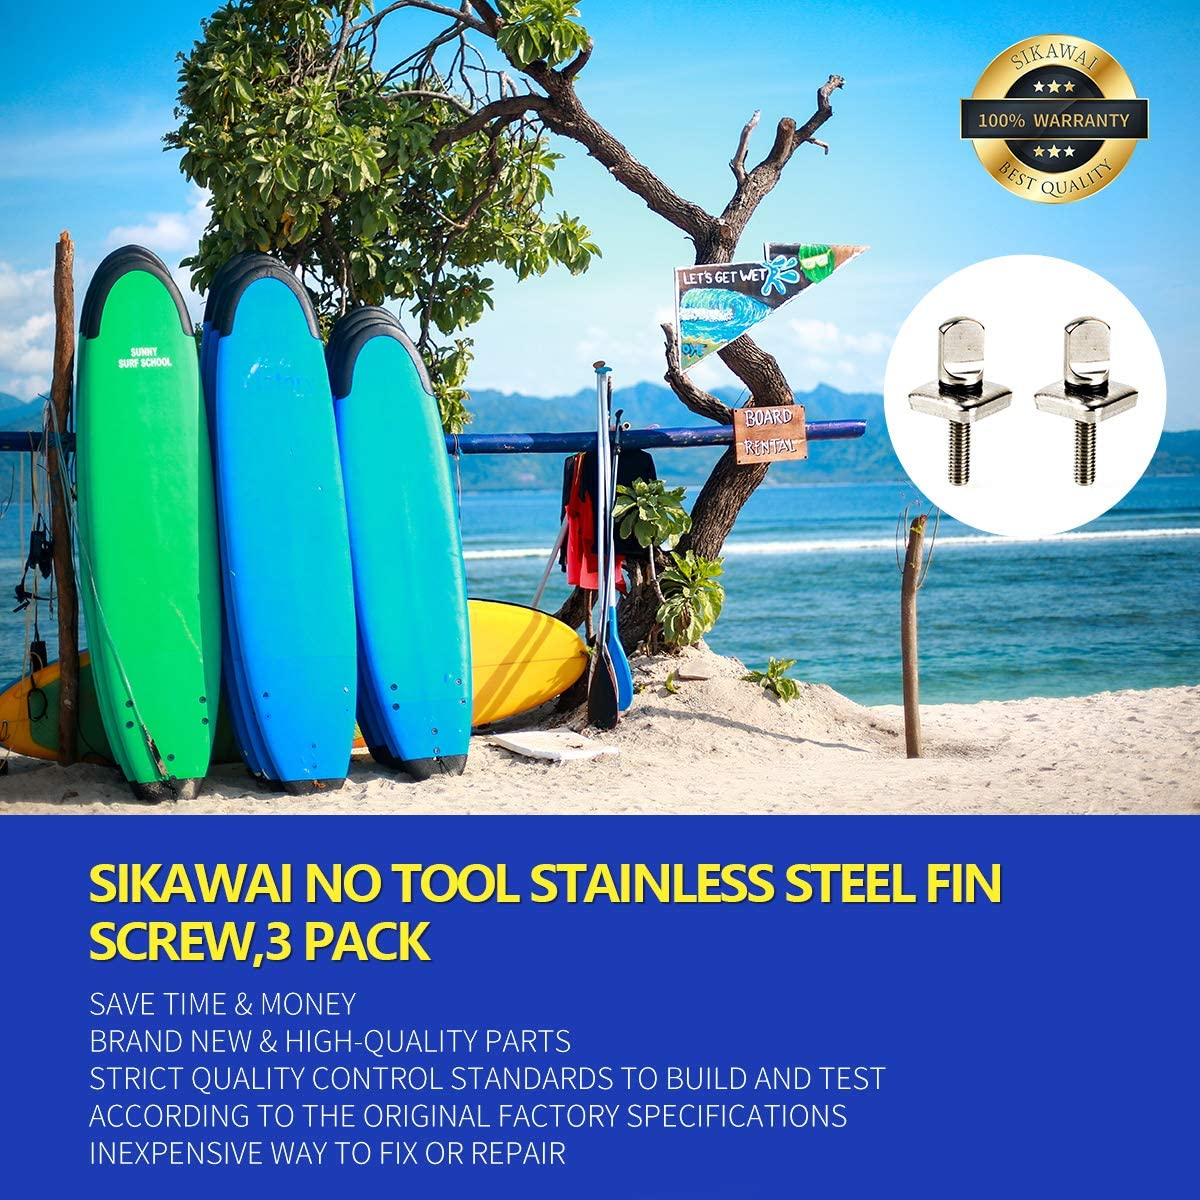 Sikawai 2 Pack No Tool Stainless Steel Fin Screw for Longboard and SUP Surfing Accessories